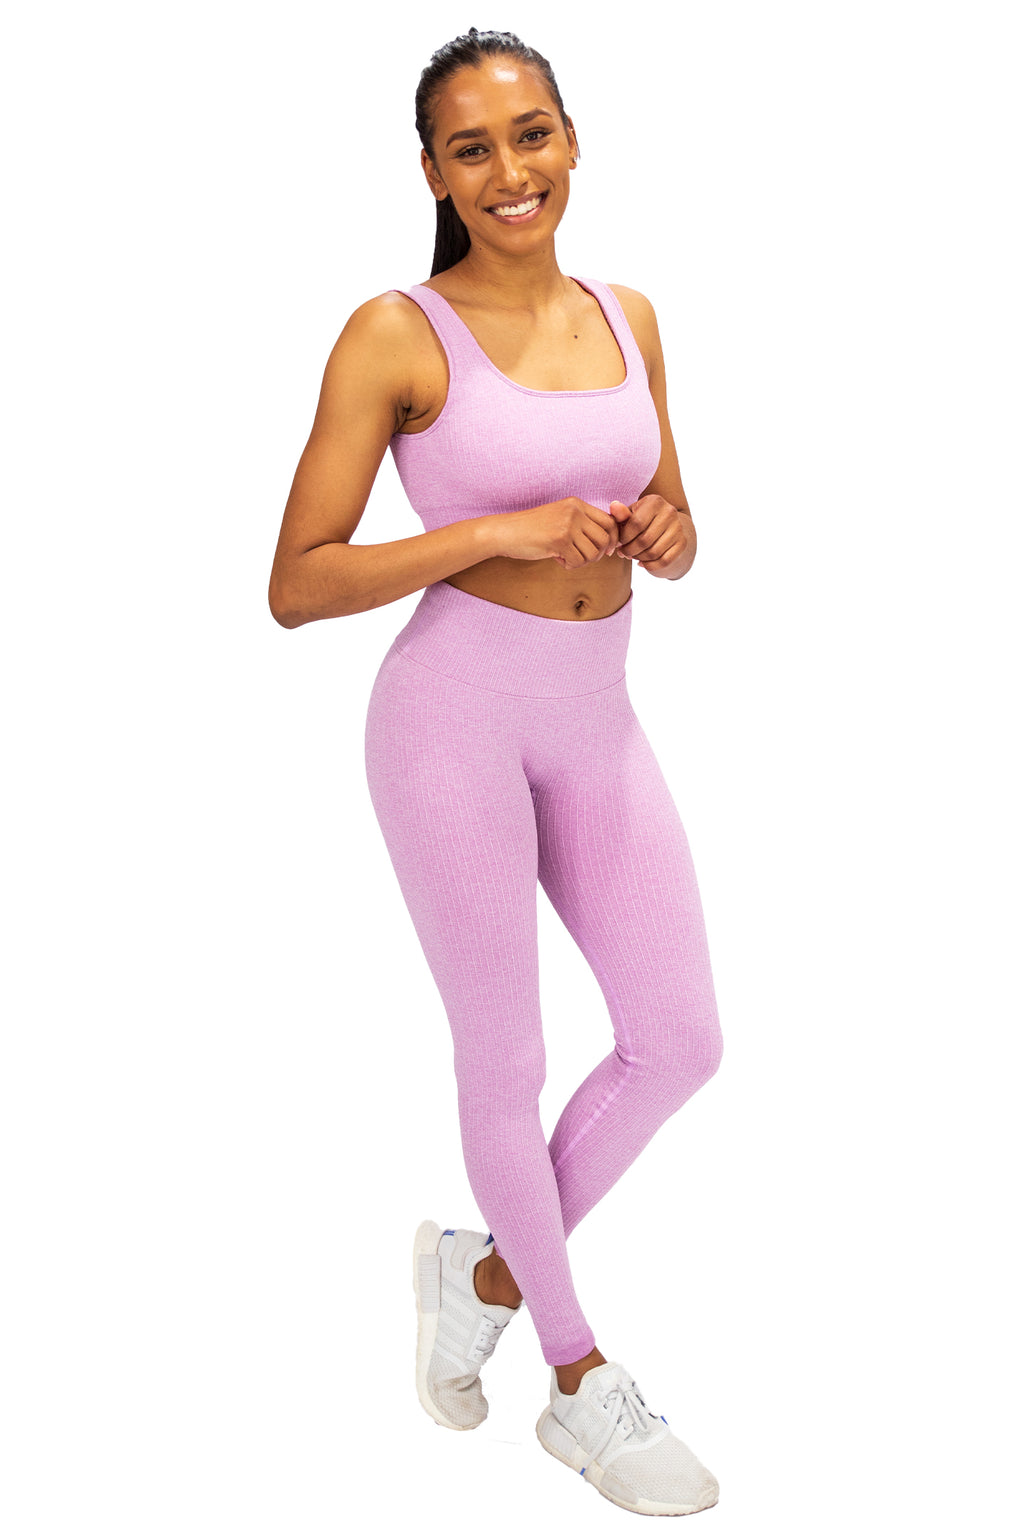 Ribbed Seamless Bra - Cotton Candy